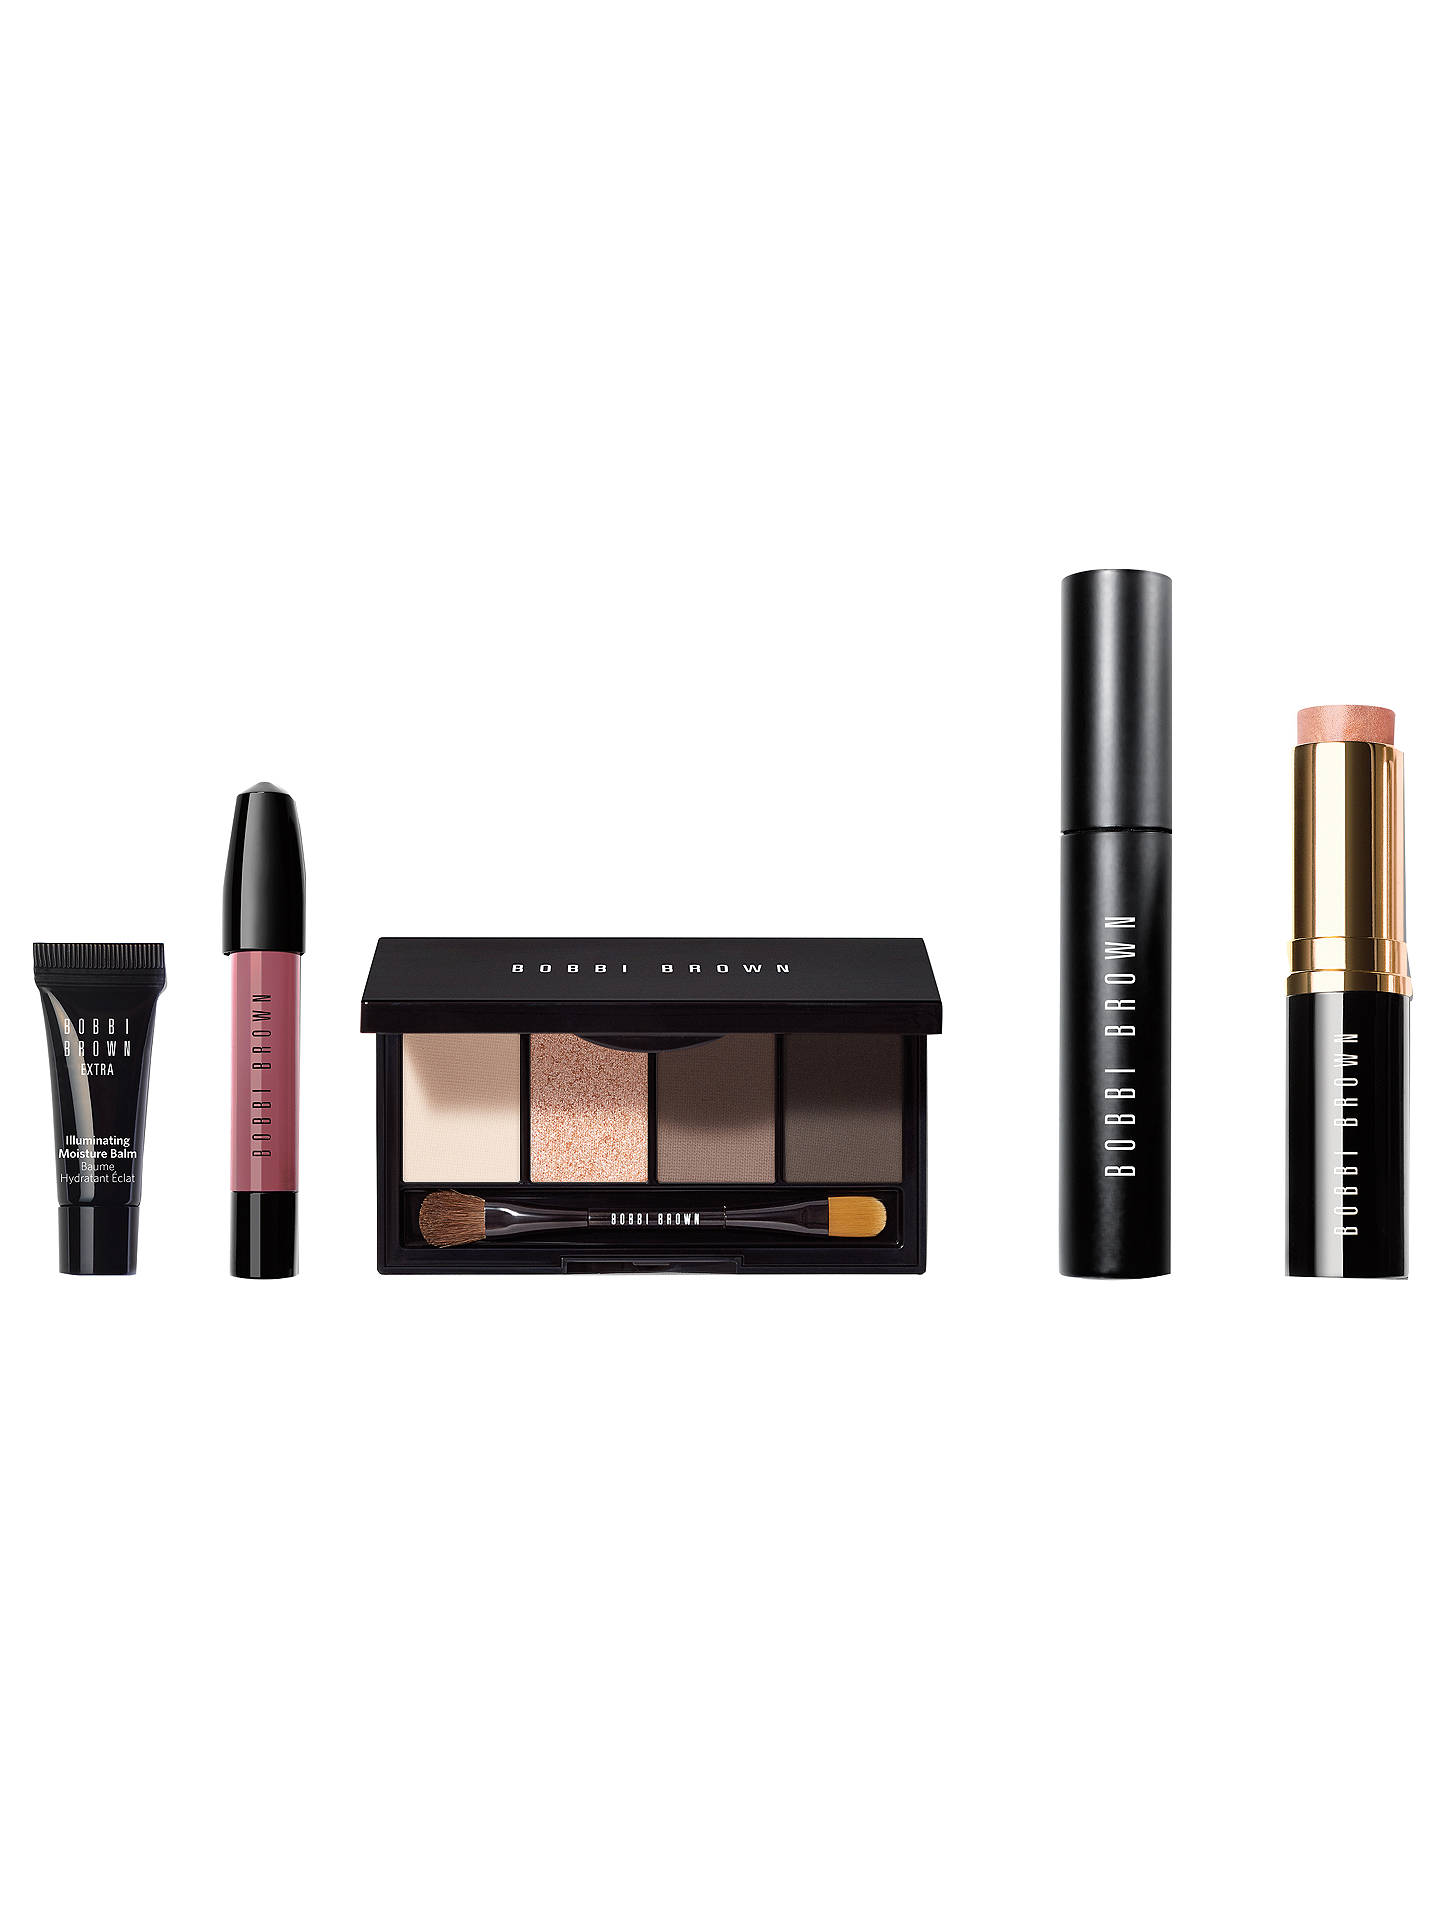 BuyBobbi Brown The Ready in 5 Edition Eye, Cheek, & Lip Kit, Multi Online at johnlewis.com